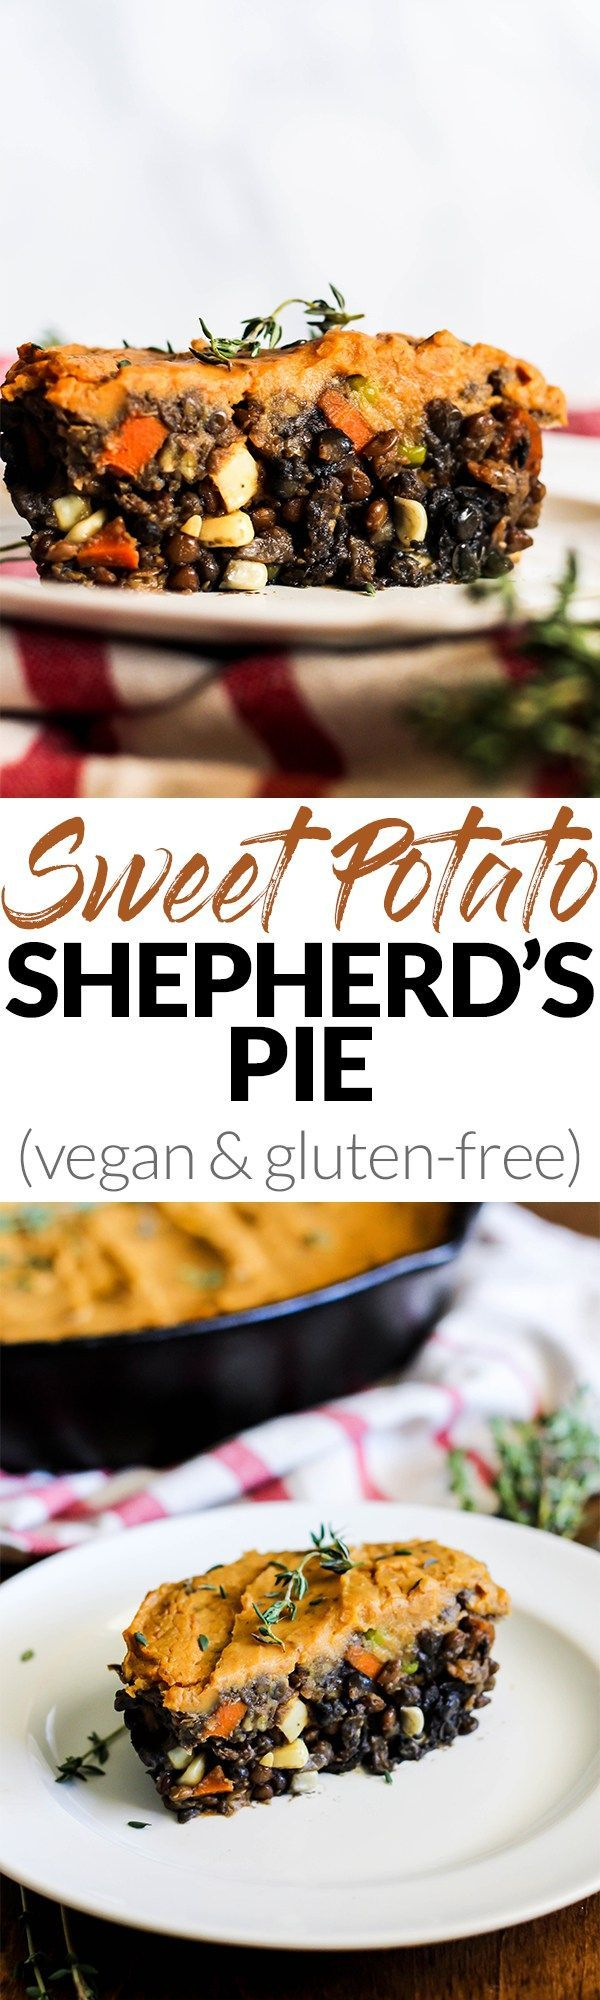 Say hello to your new favorite comfort food recipe: Vegan Sweet Potato Shepherd's Pie! Filled with lentils, vegetables & sweet potatoes for a hearty dinner. (gluten-free) @pompeian #TrendingintheKitchen #ad